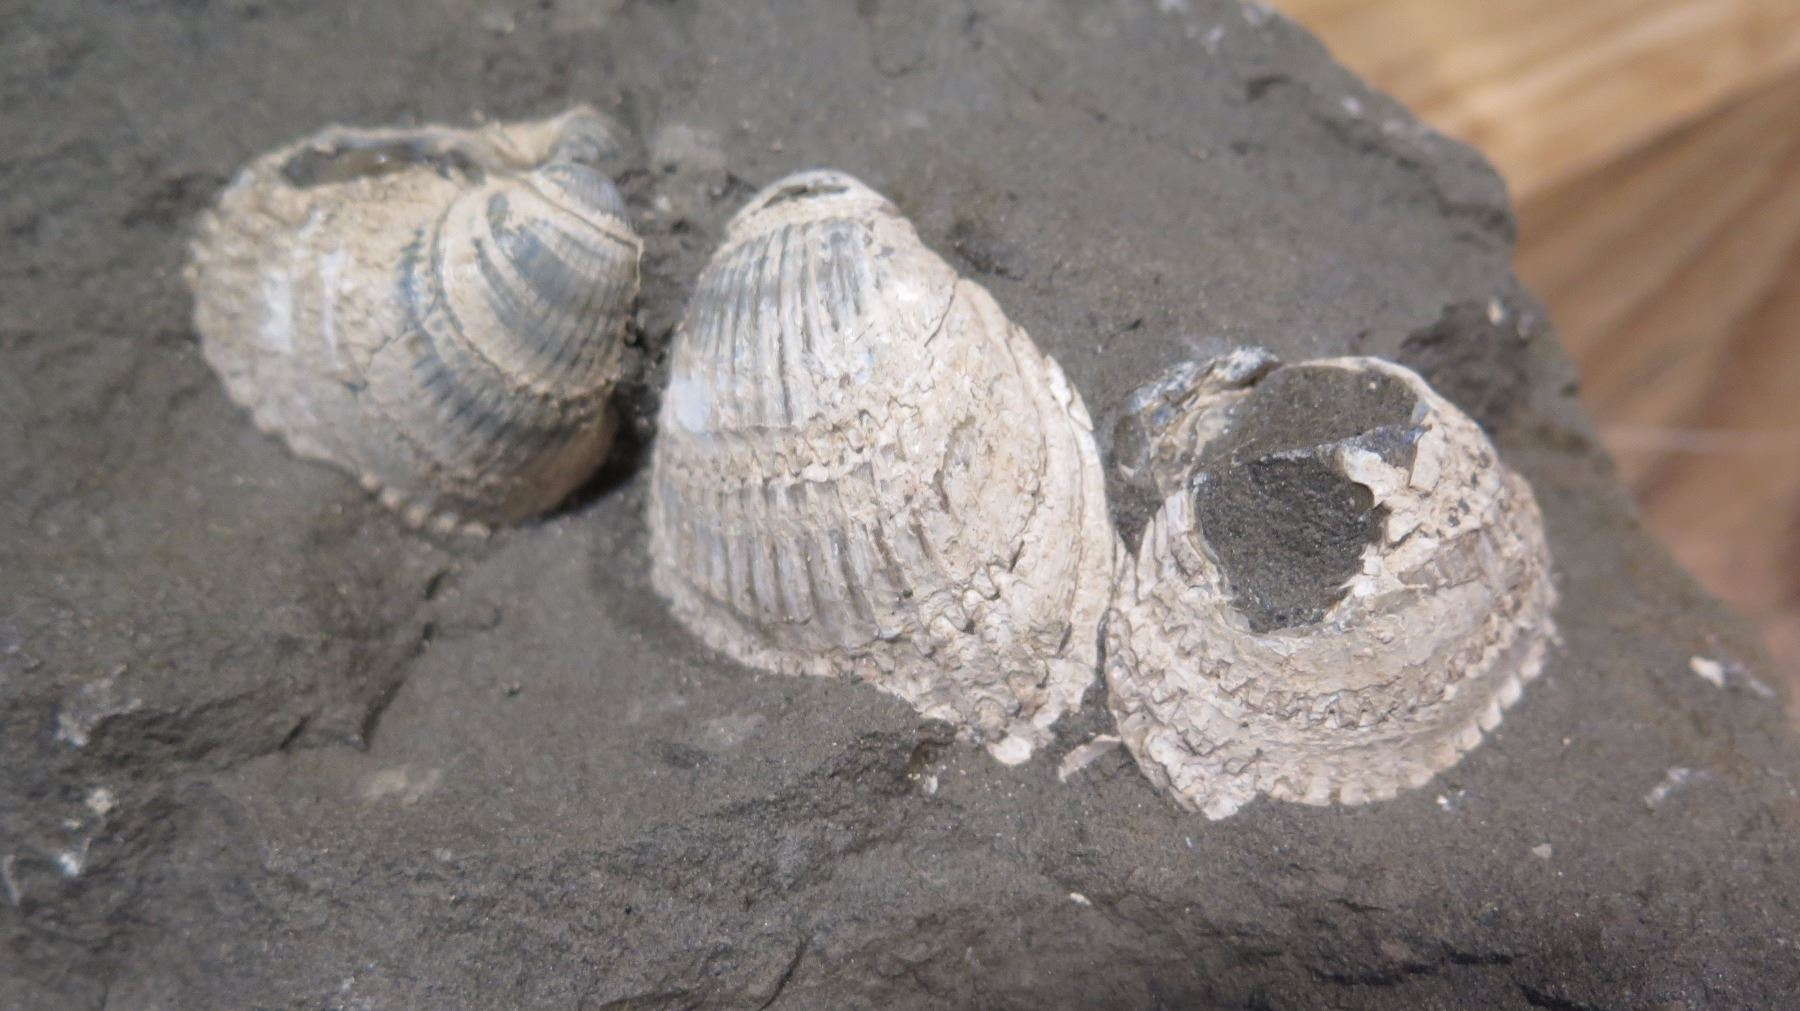 2 Fossil Clam Shells from Georgetown Ohio